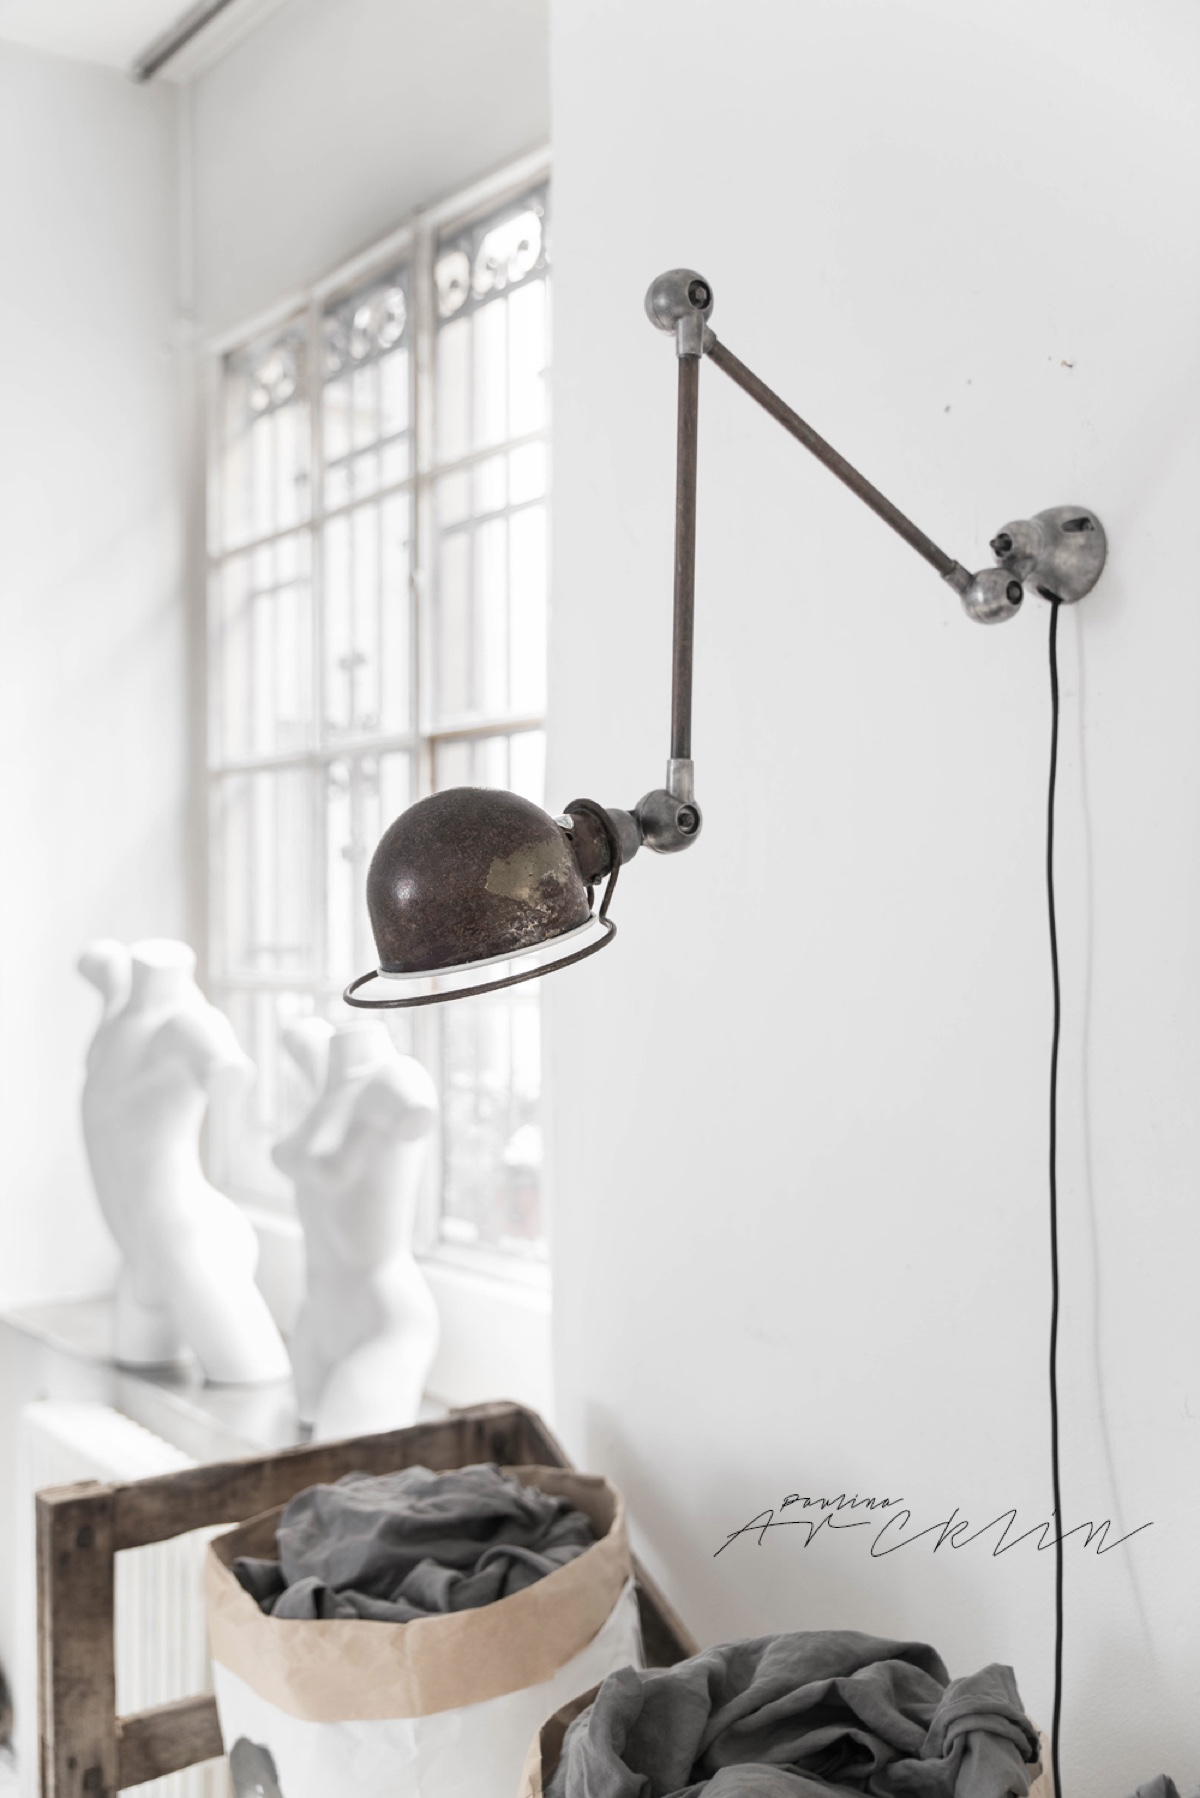 Antique Patina Jielde Lamp - Cottage chic meets industrial decor in this amazing milan apartment